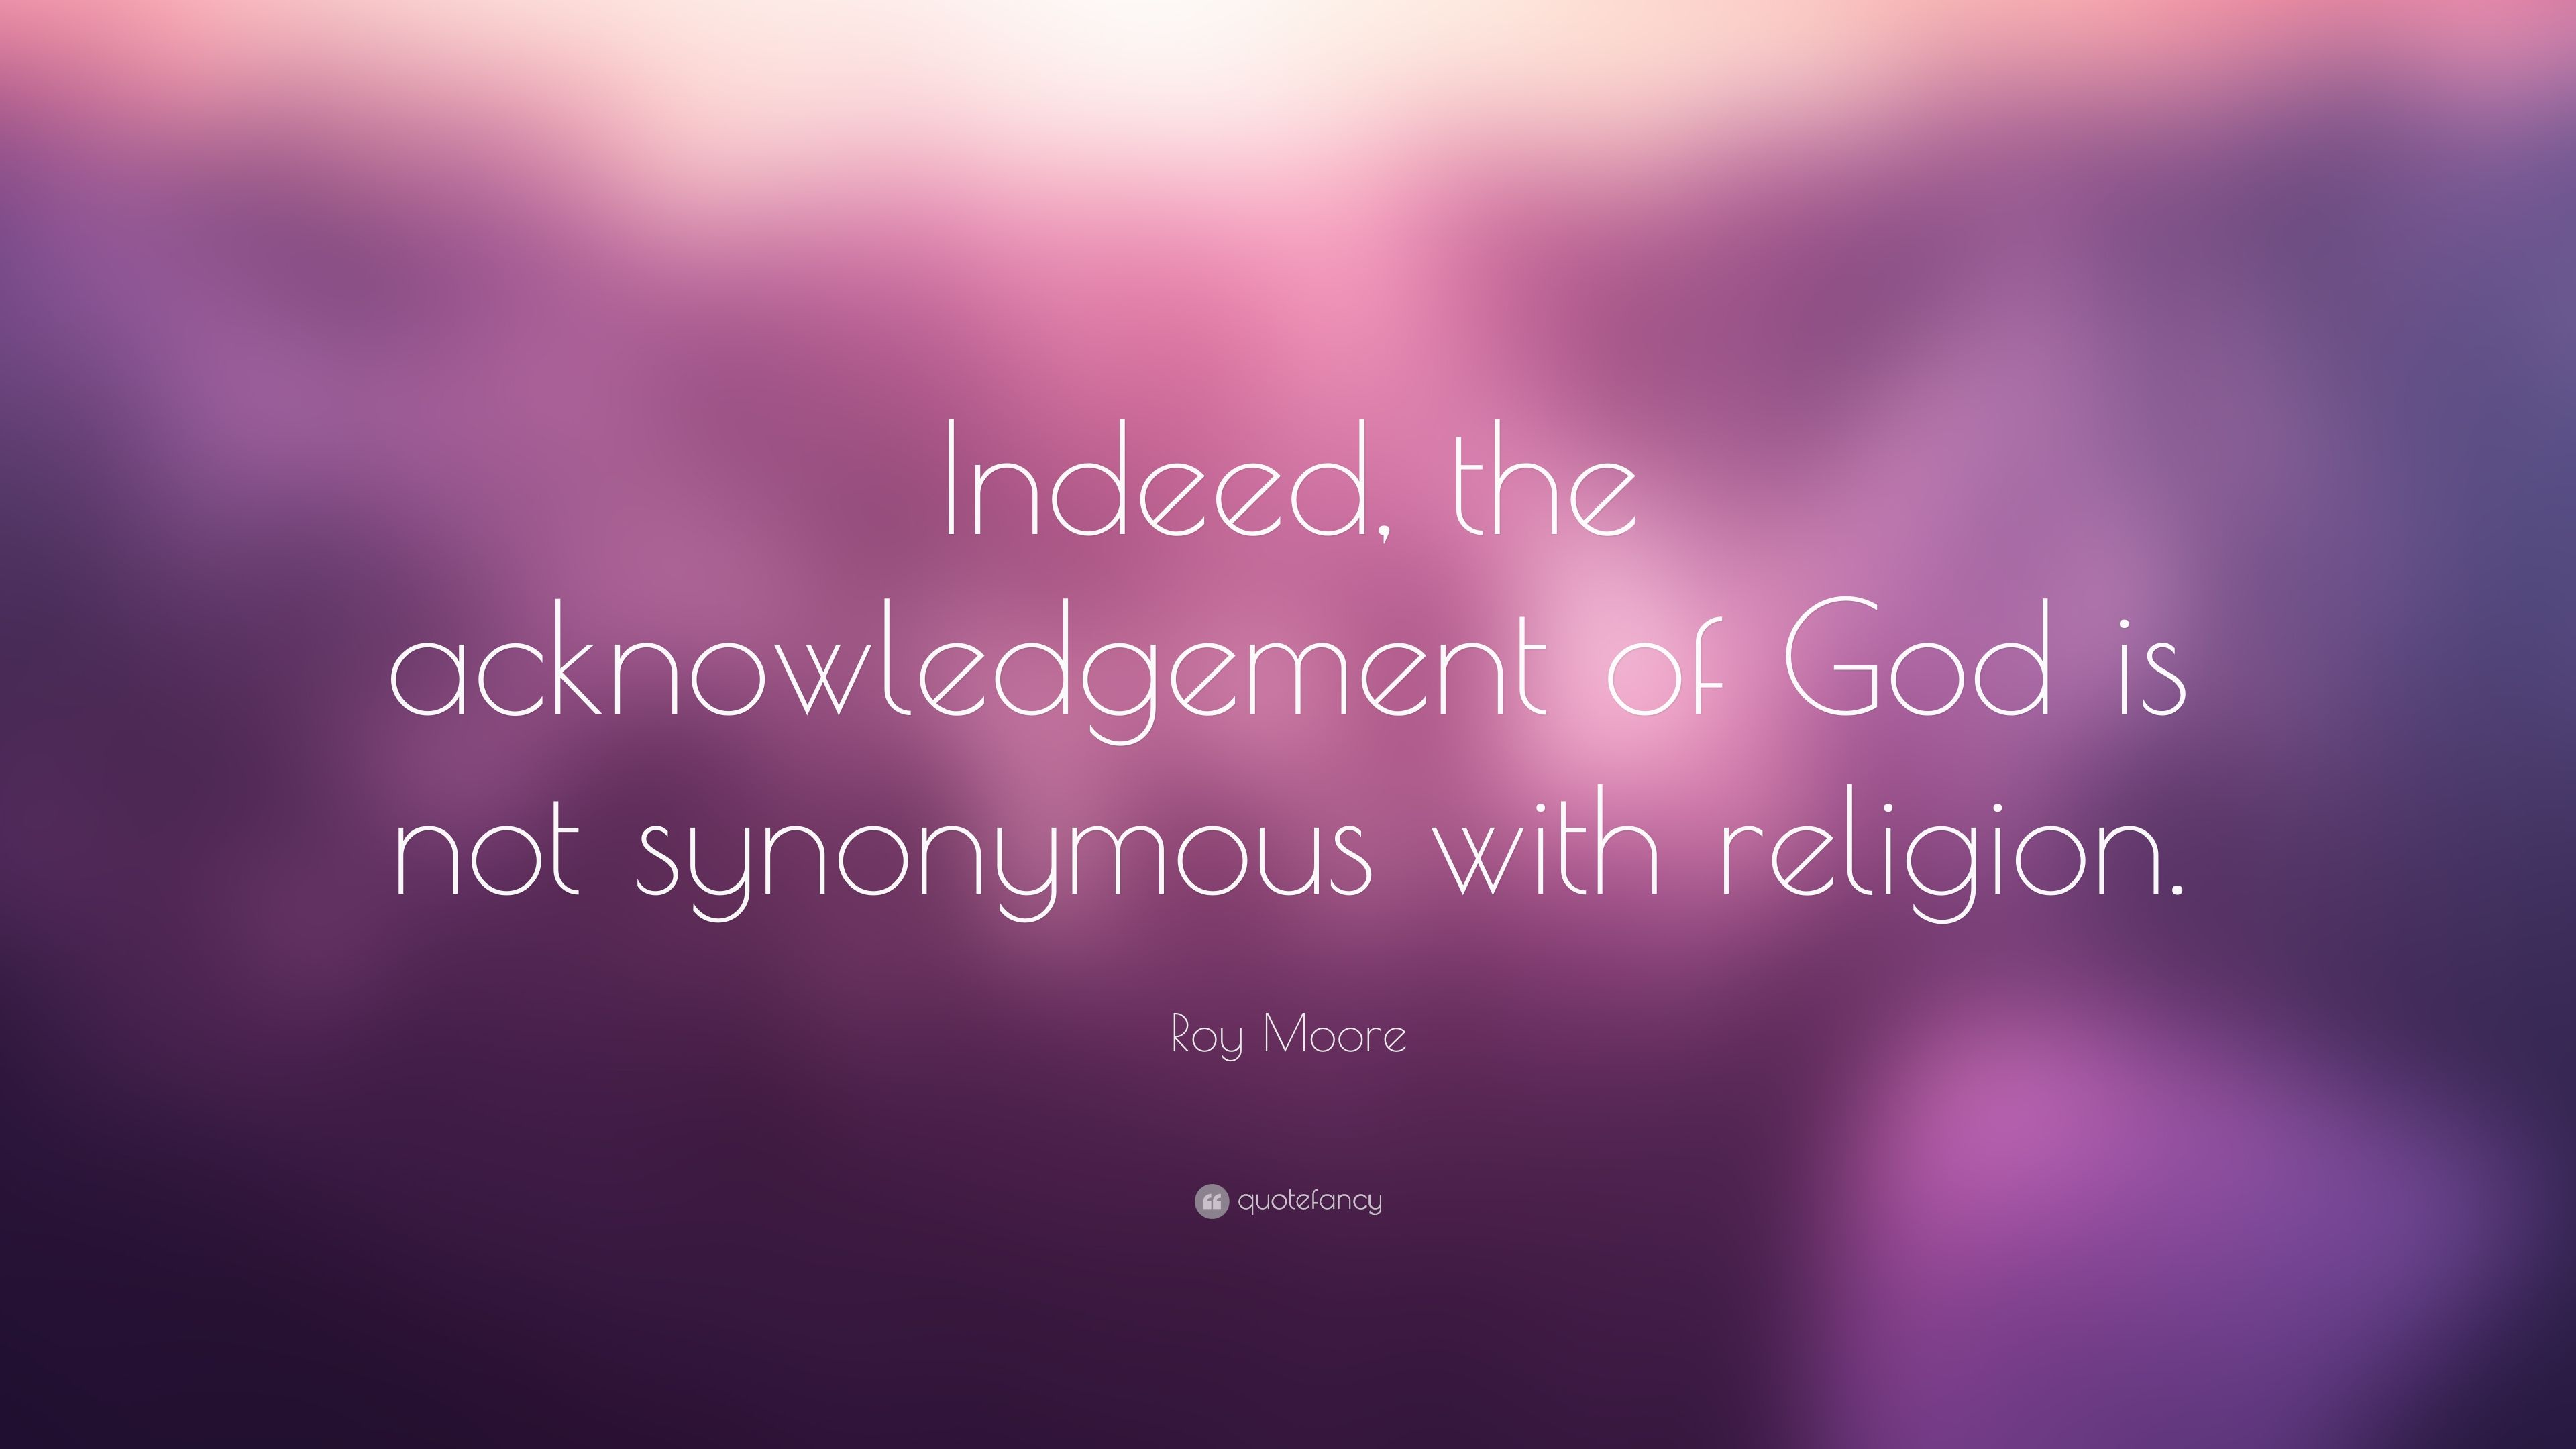 Roy moore quote indeed the acknowledgement of god is not roy moore quote indeed the acknowledgement of god is not synonymous with religion altavistaventures